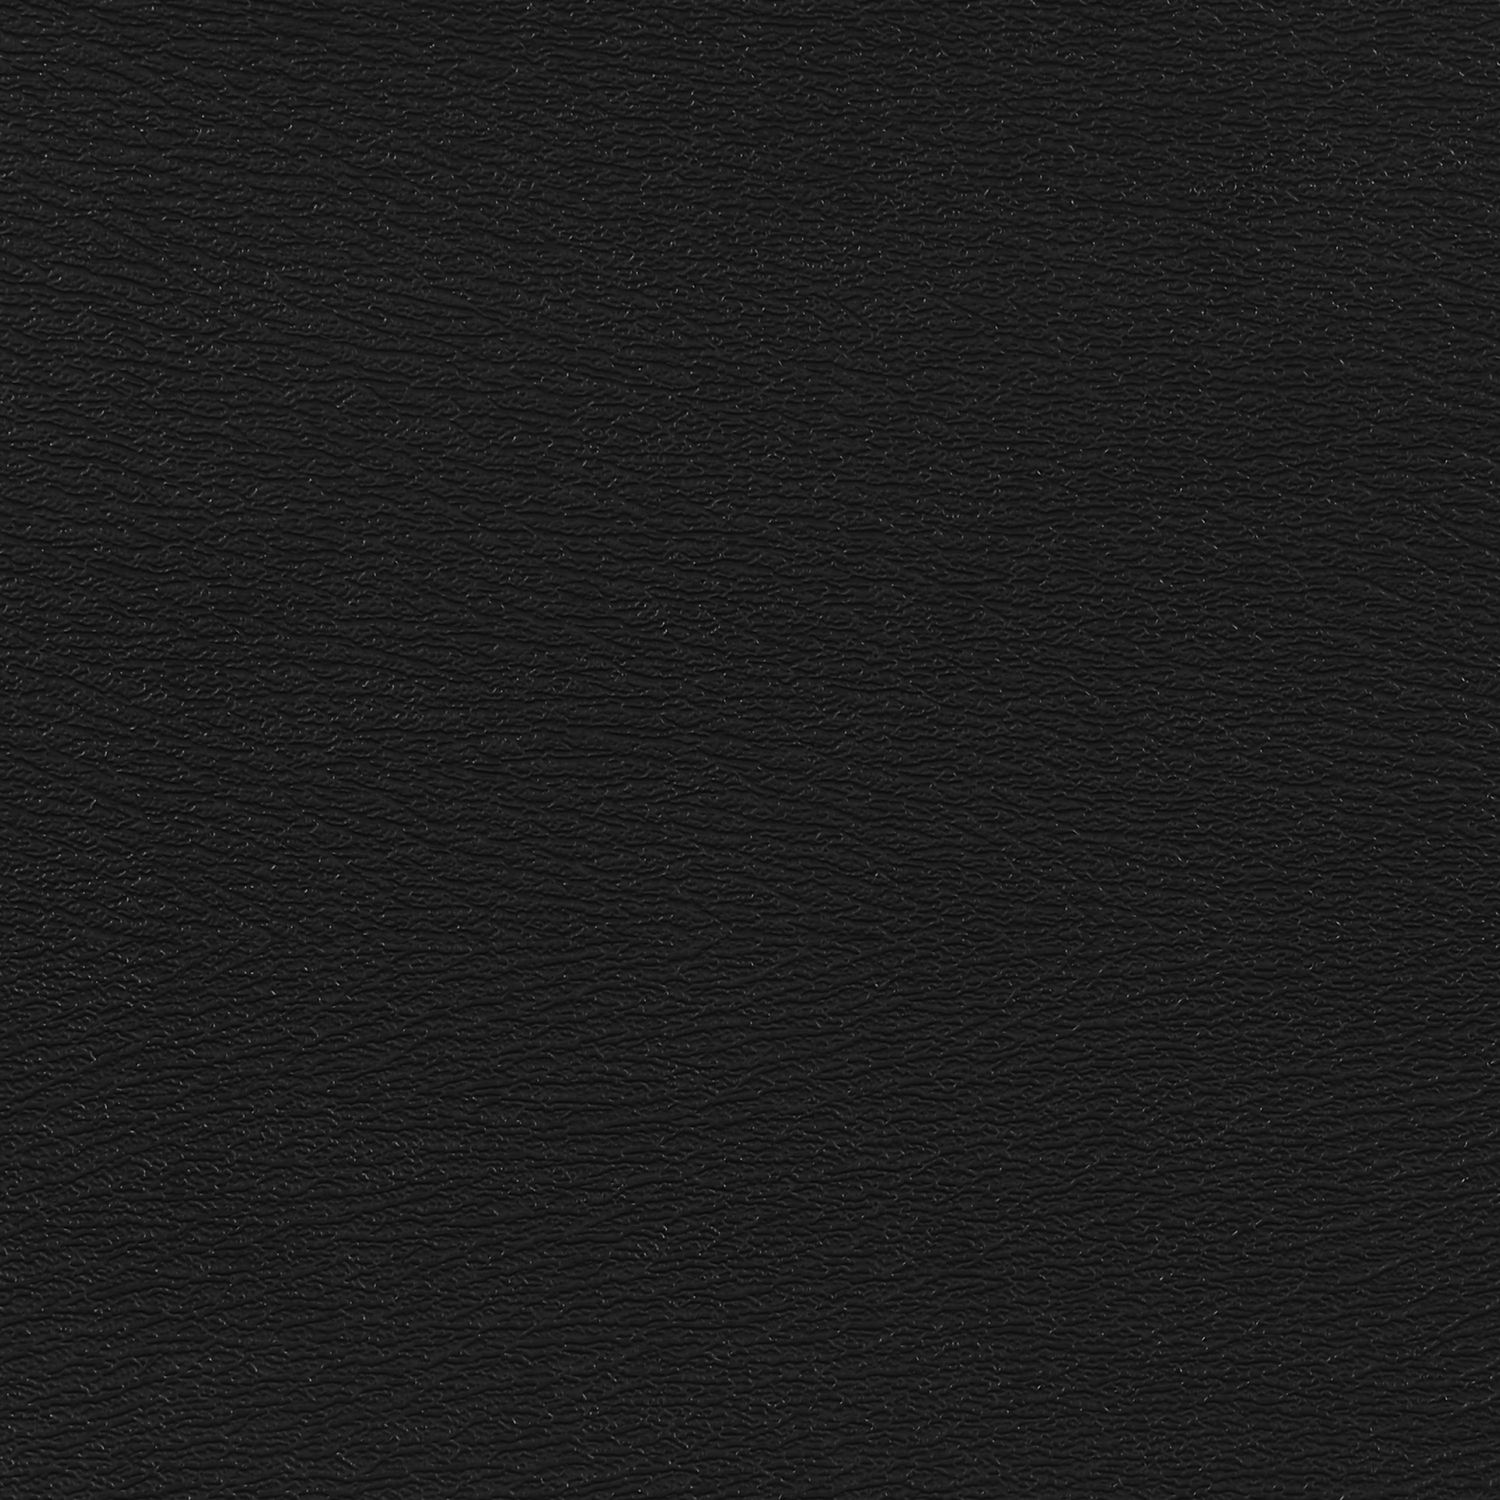 Cs207 Computer Chair 800207 Coaster Furniture Office Chairs In 2021 Black Wallpaper Black Wallpaper Iphone Iphone 5s Wallpaper